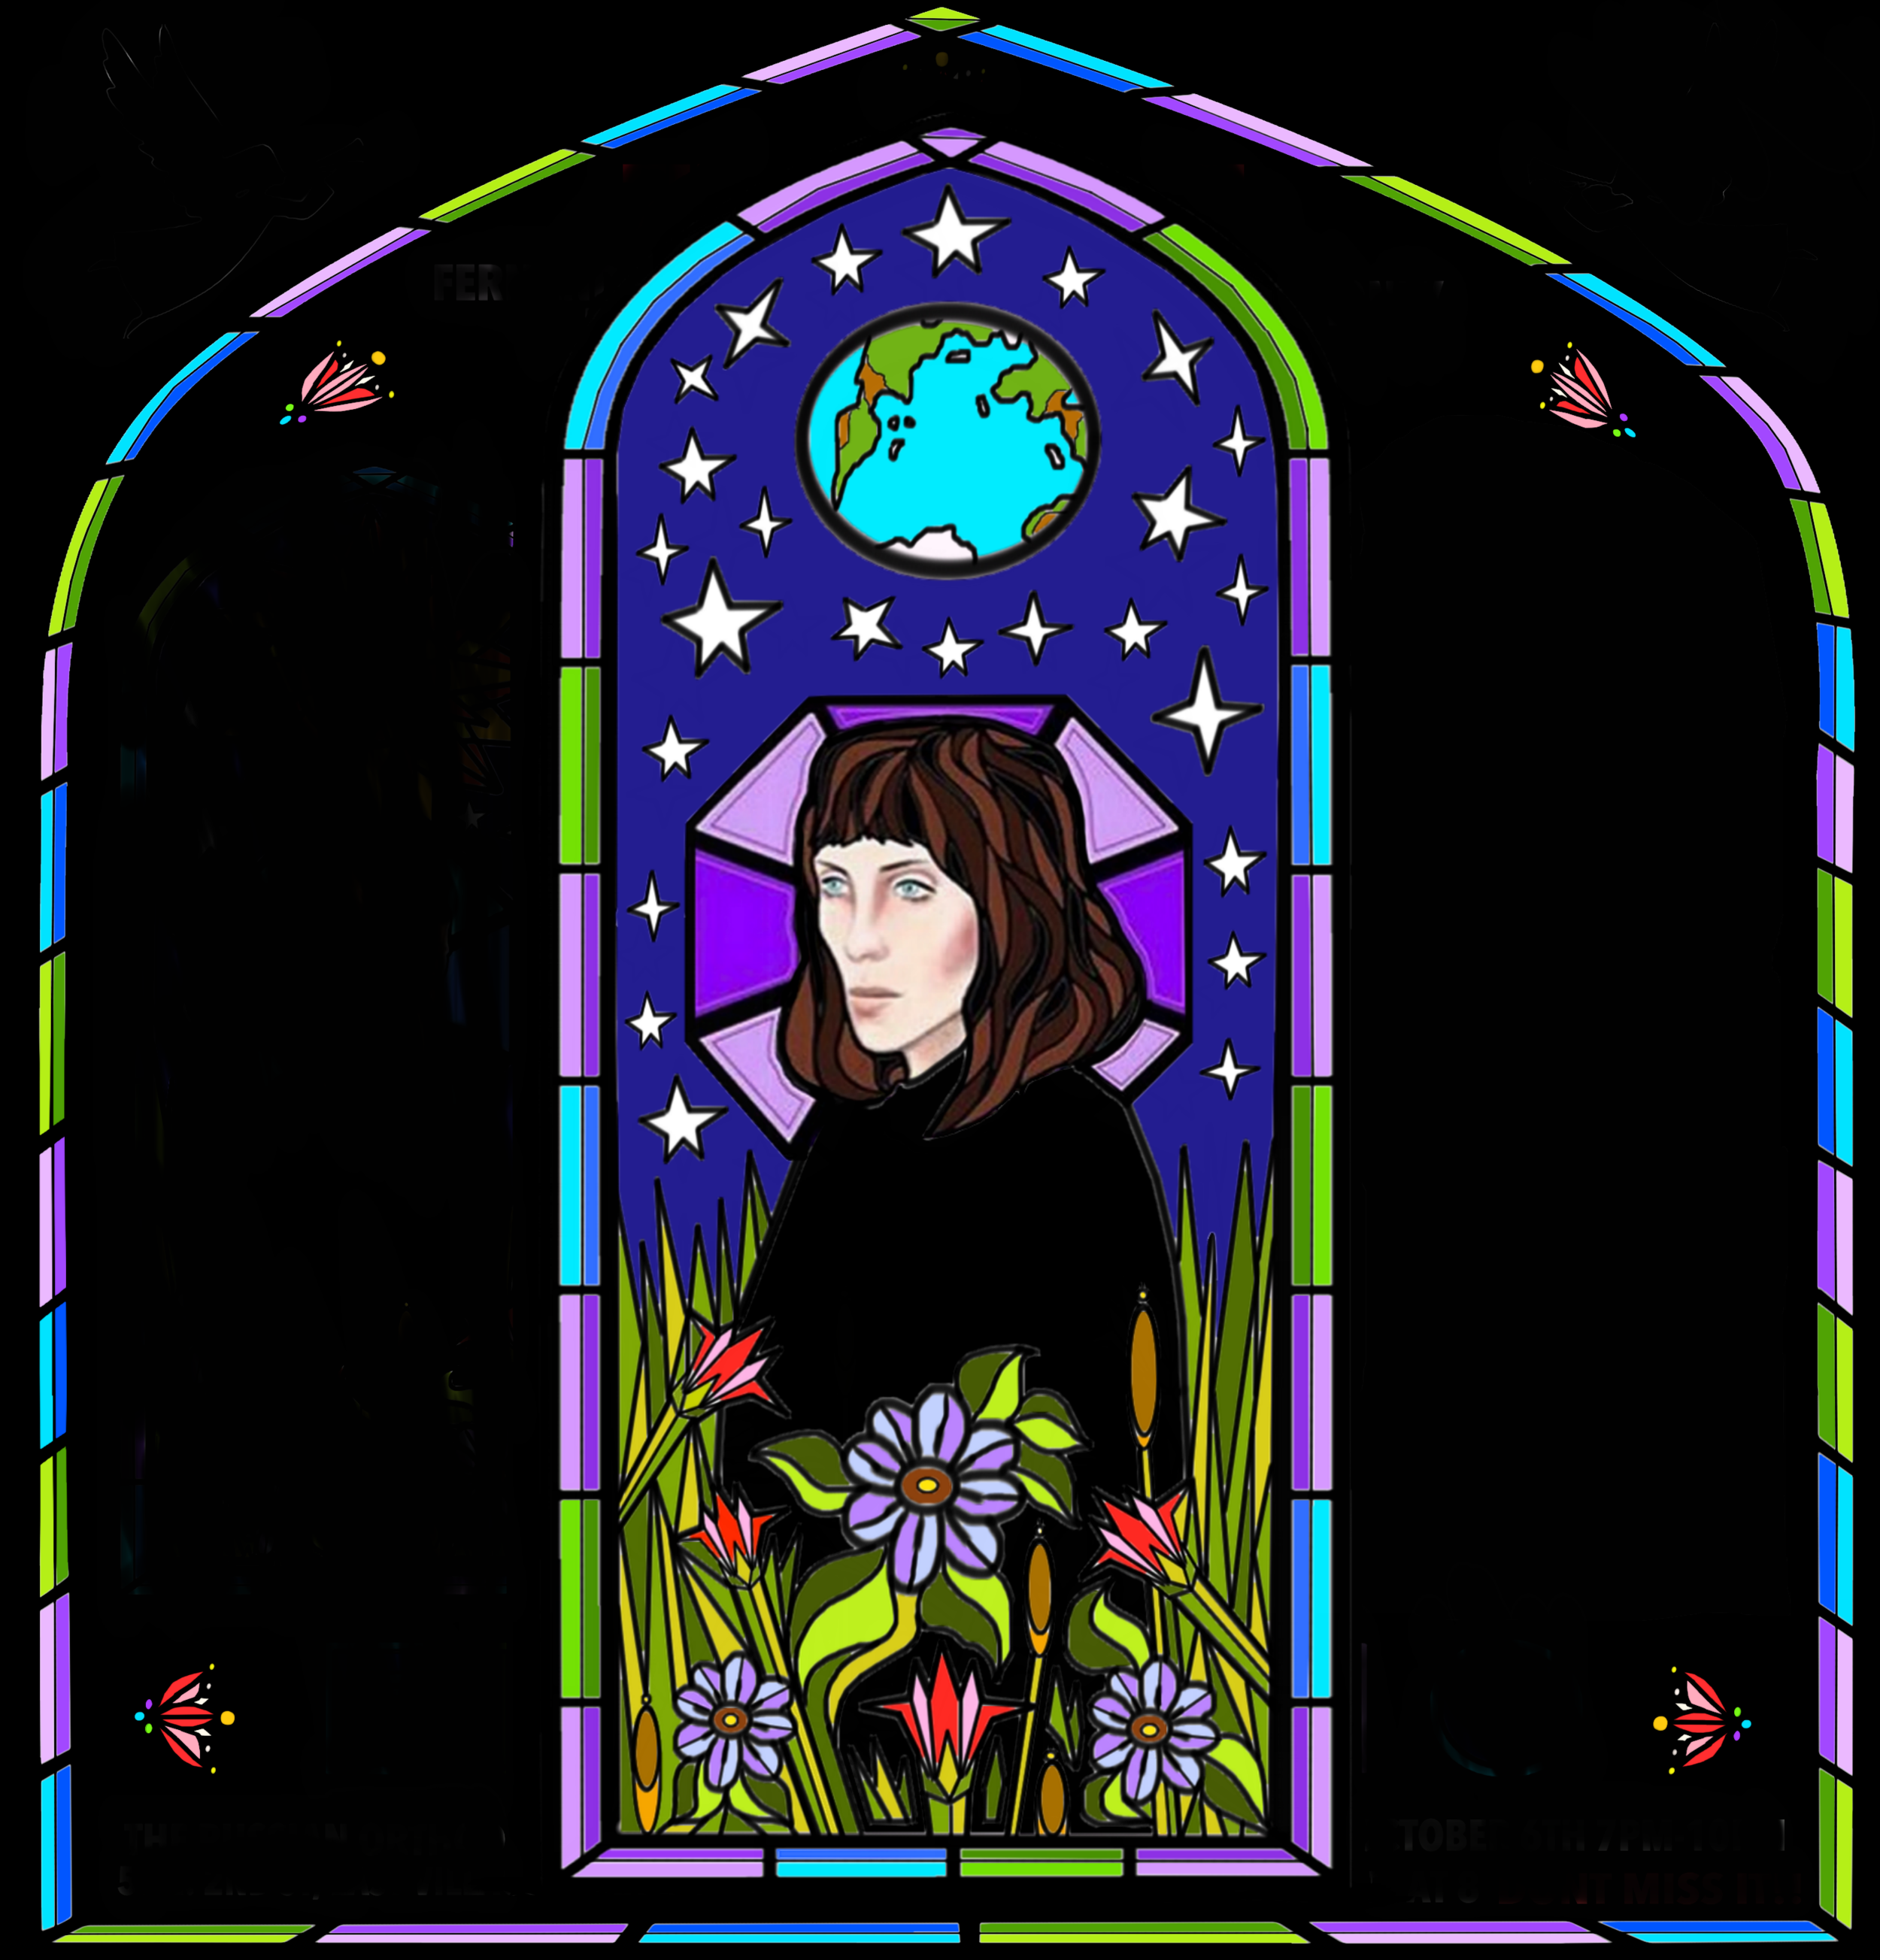 free-printable-stained-glass-window-coloring-pages-14 copy 8.png